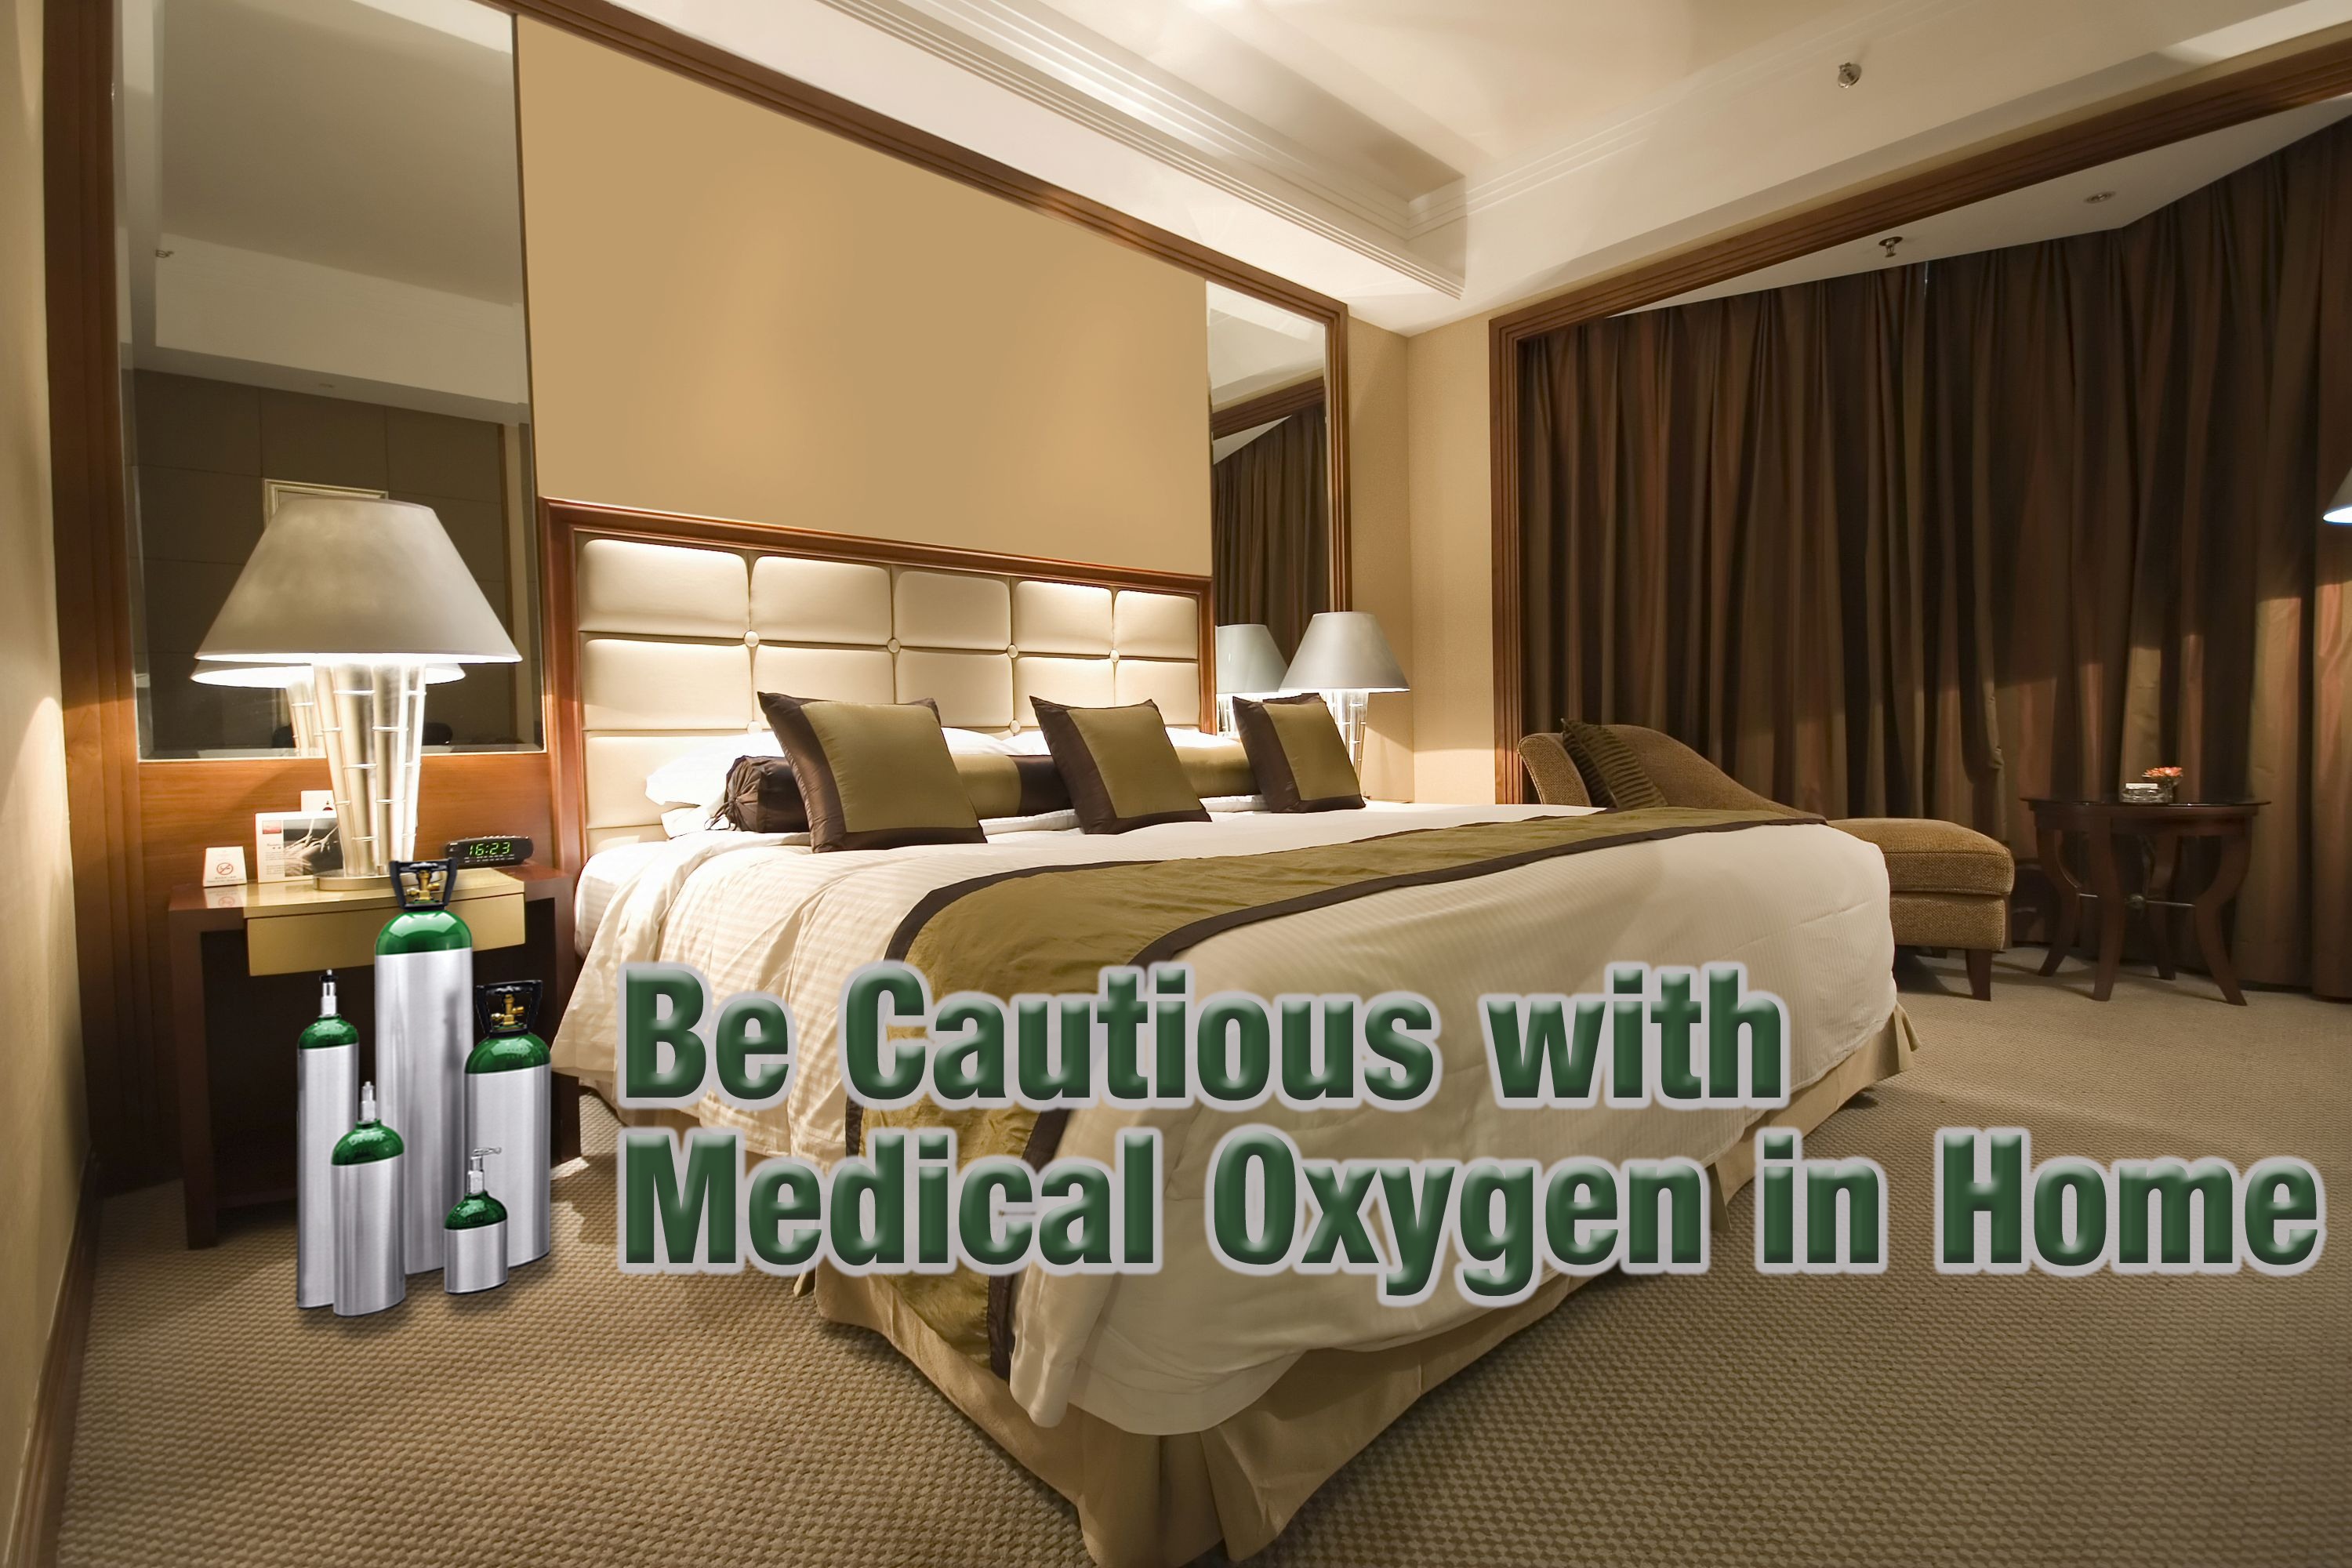 Use Caution with Medical Oxygen